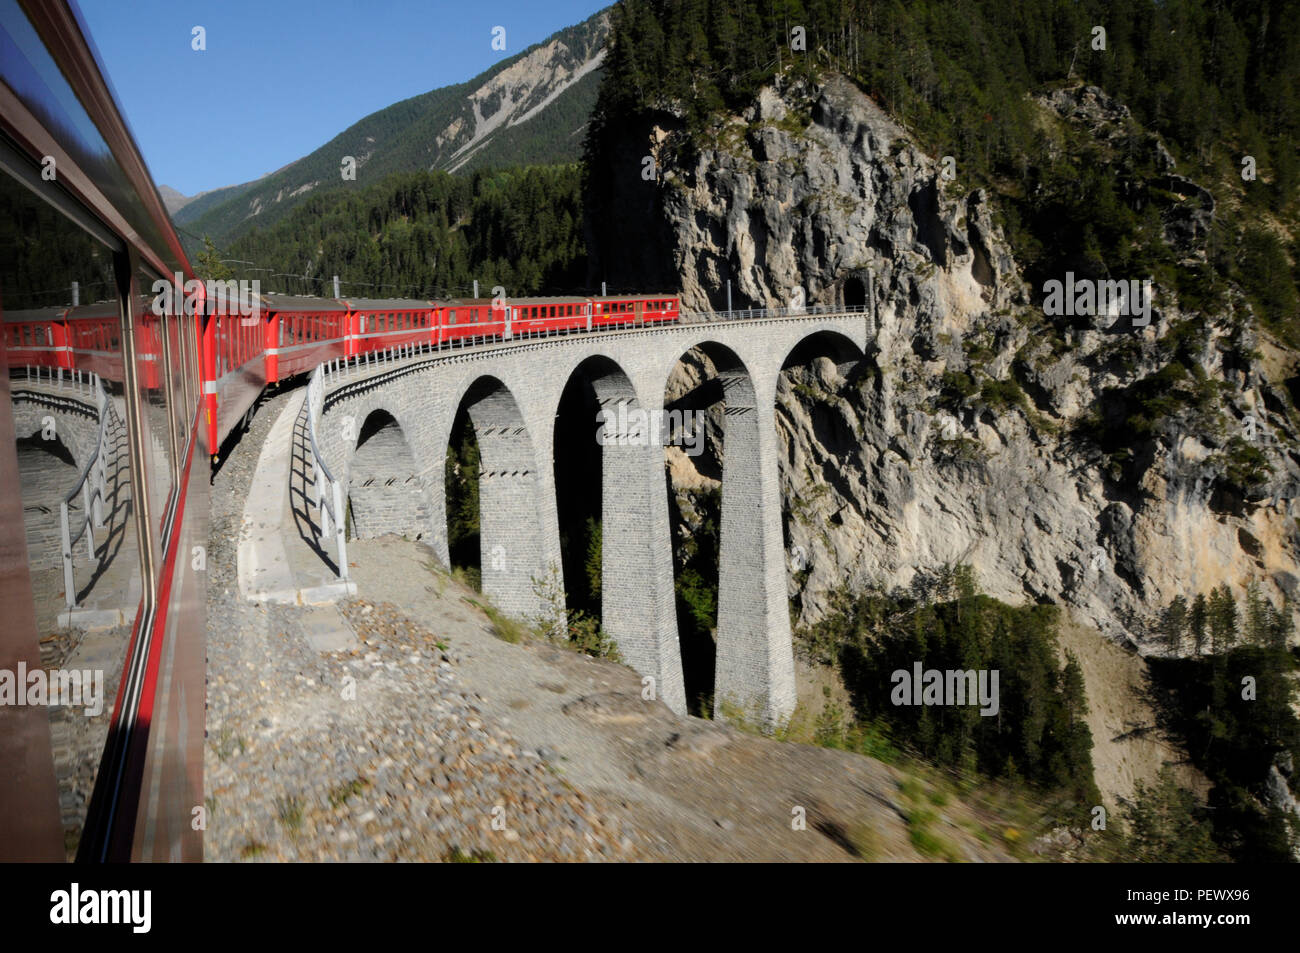 The Rhätische railway on its way through the Unesco World Heritage in the Swiss alps - Stock Image